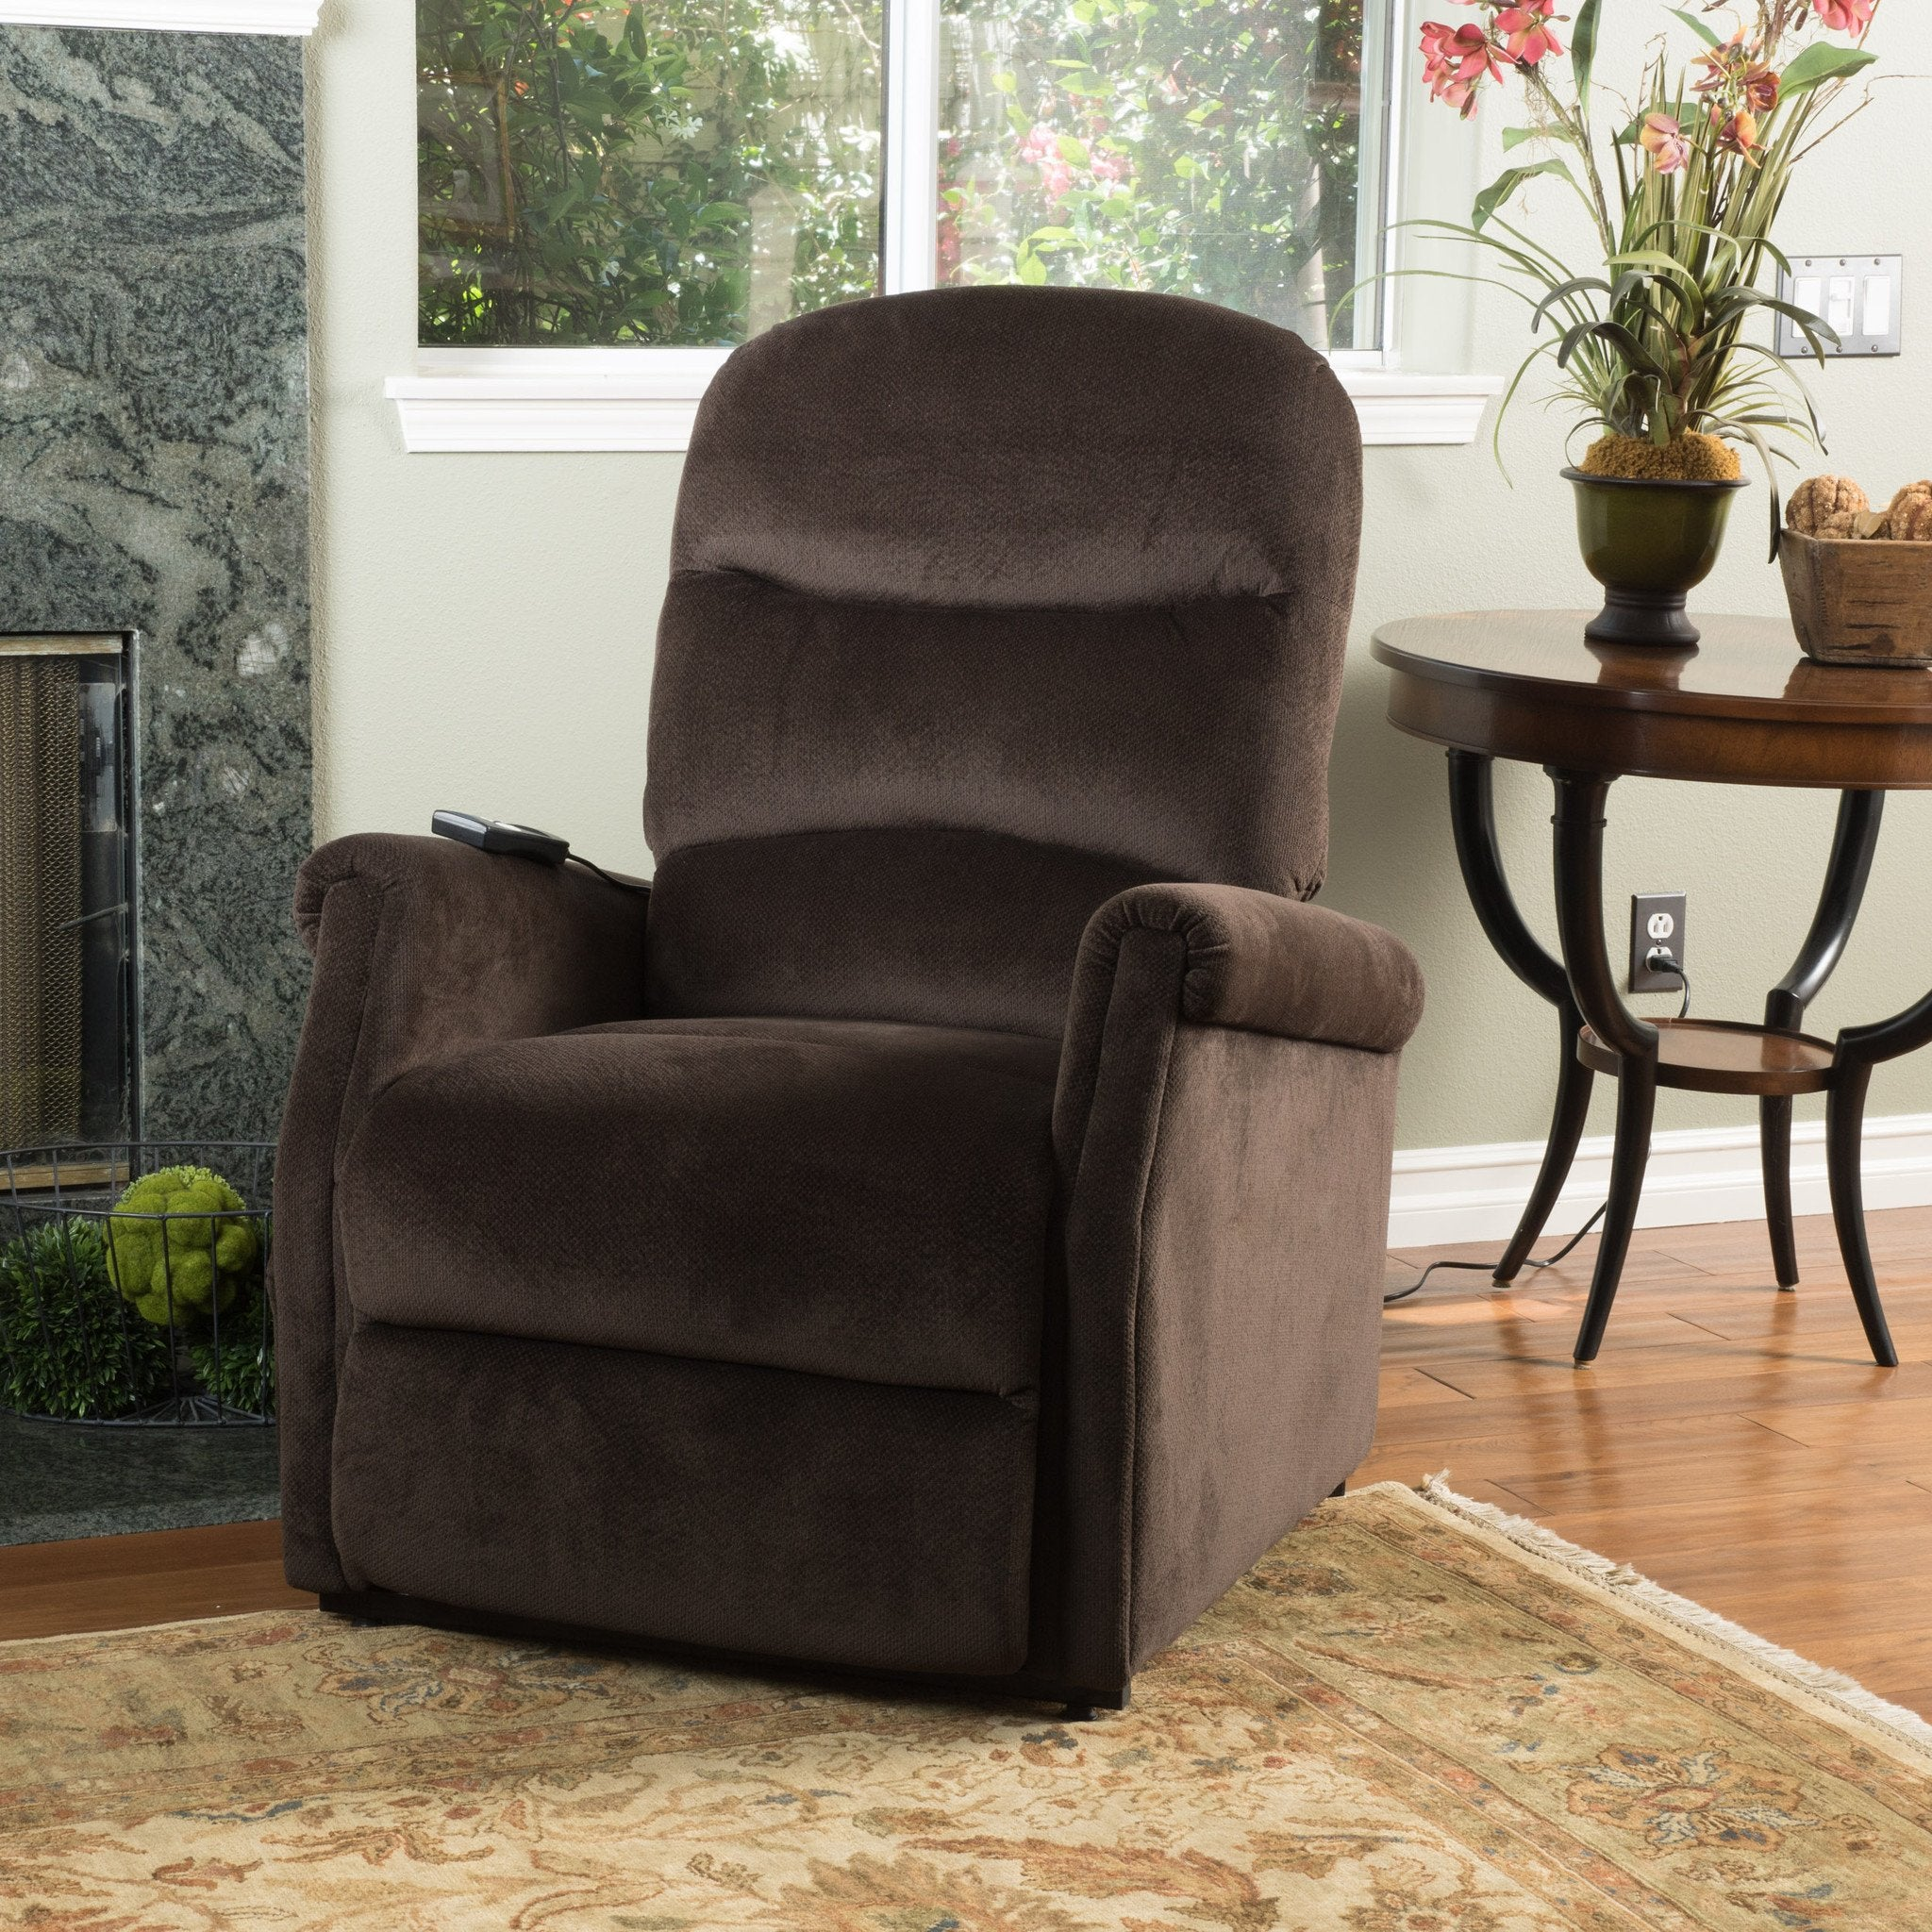 Hadrian Latte Fabric Lift Up Chair